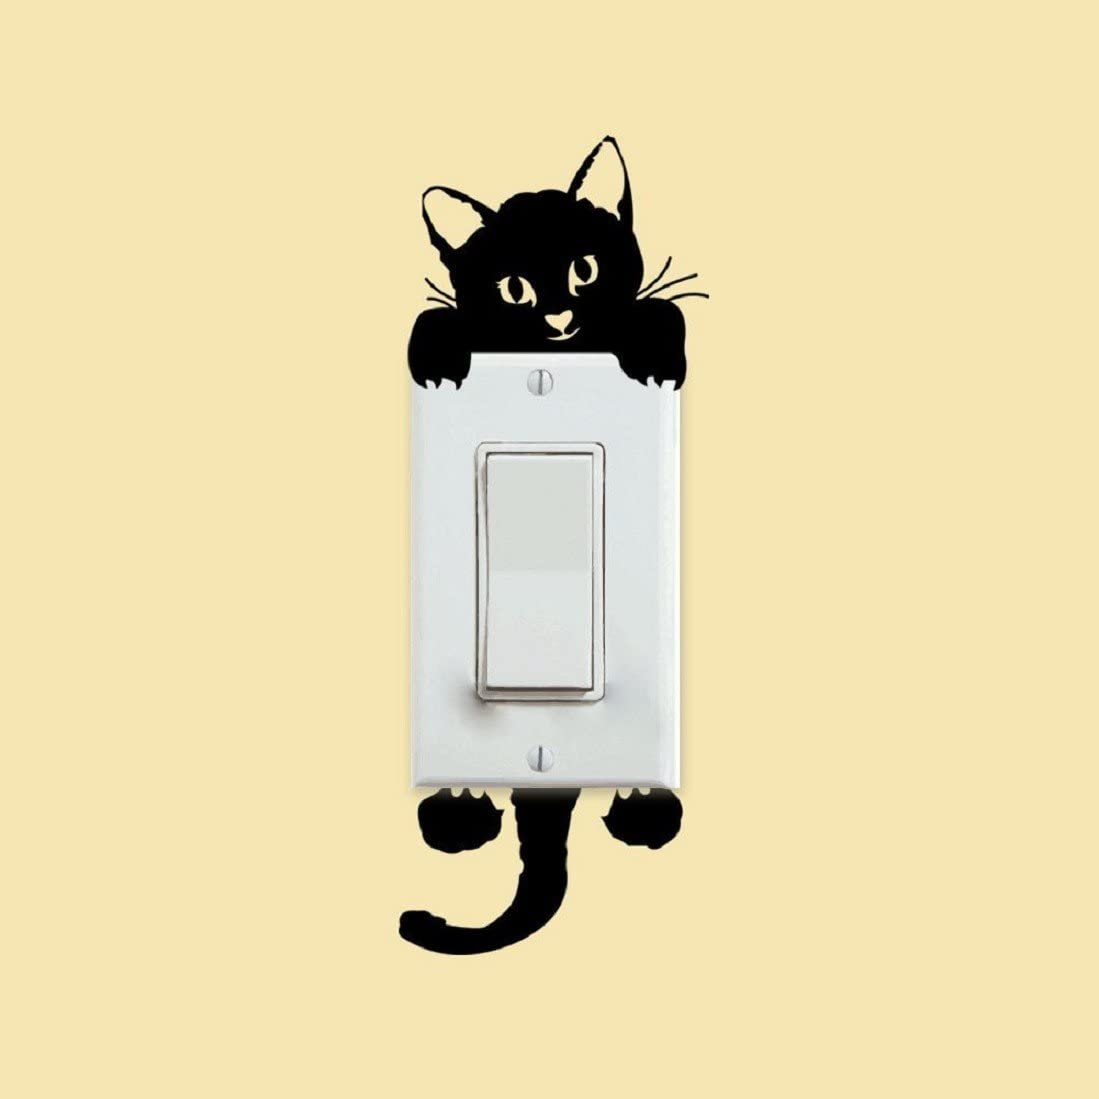 Decaltor Cat Wall Stickers Light Switch Decor Decals Art Mural Baby Nursery Room